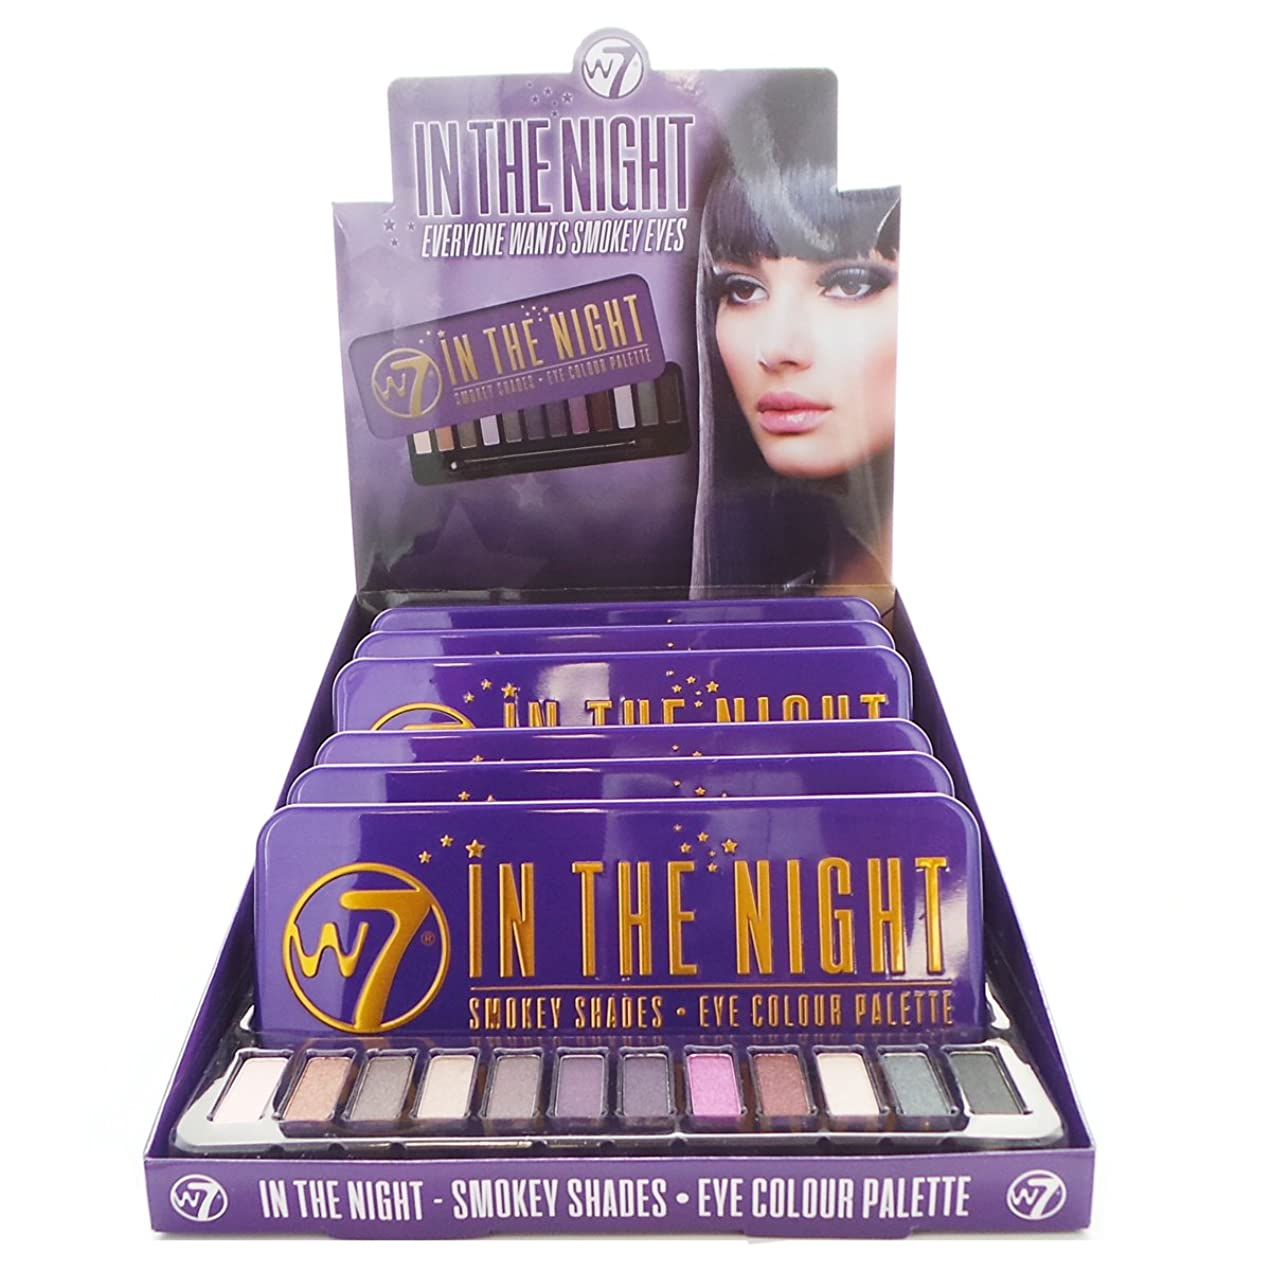 素晴らしさ主人隠されたW7 In The Night Smokey Shades Eye Colour Palette Display Set, 6 Pieces plus Display Tester (並行輸入品)